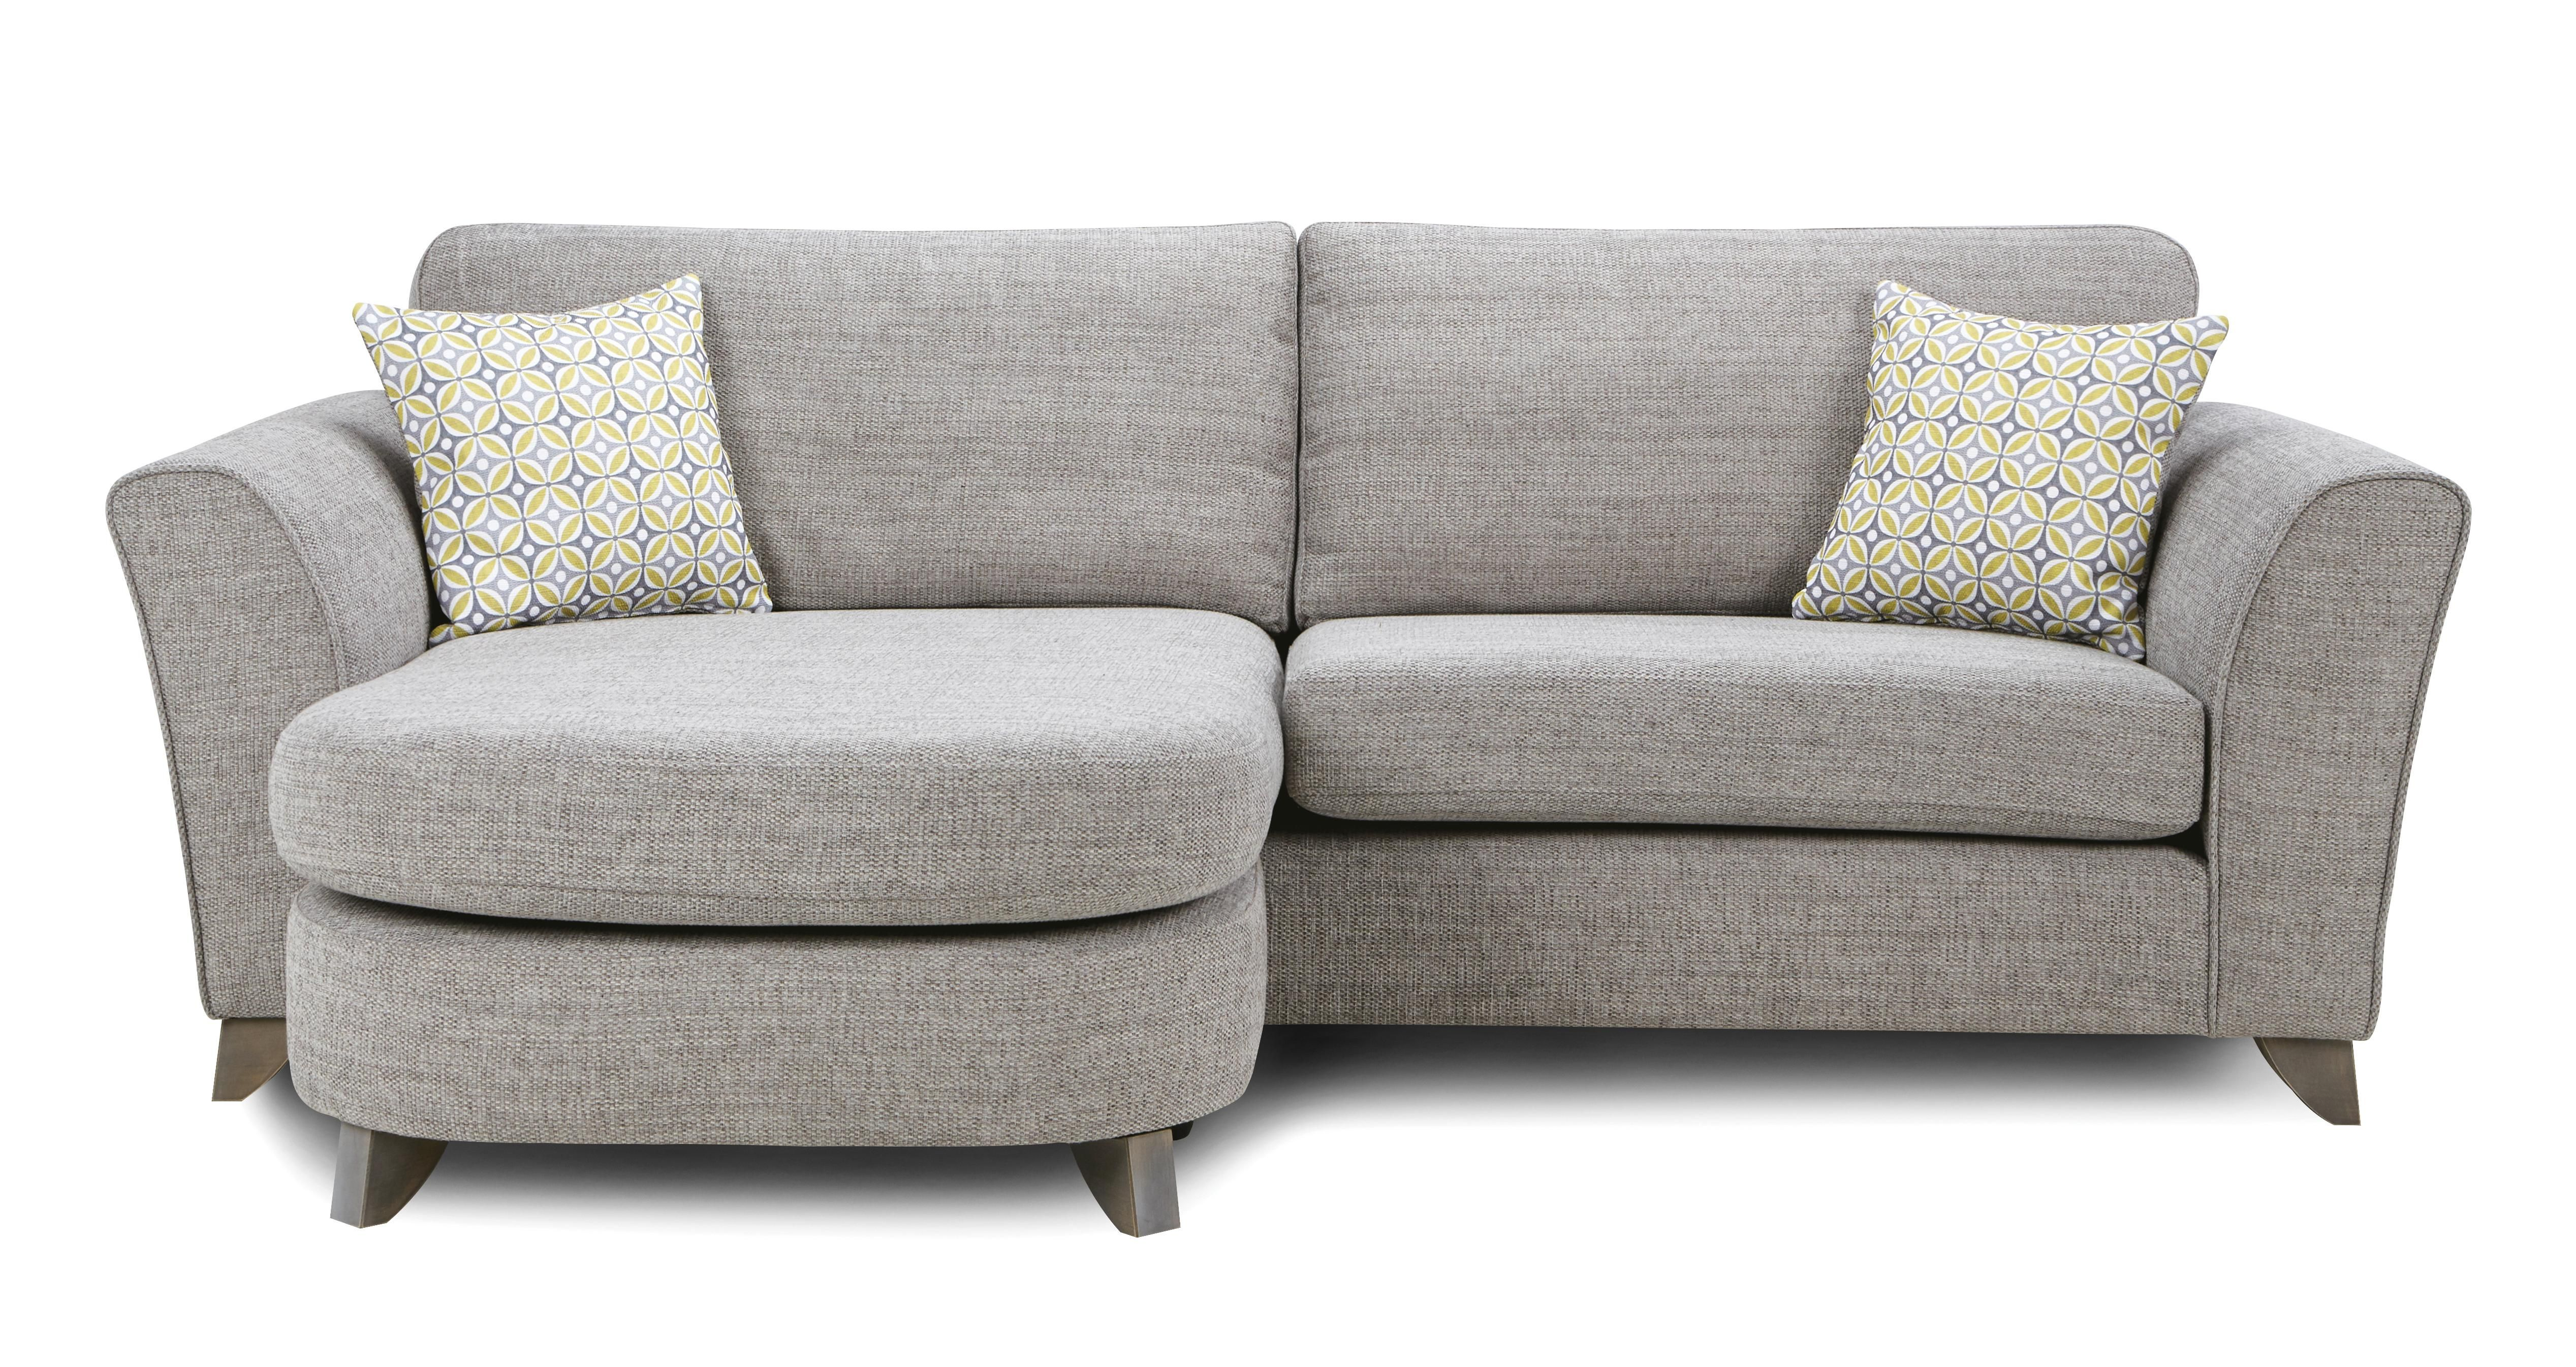 Clovelly Formal Back 4 Seater Lounger Sofa in 2020 Sofa